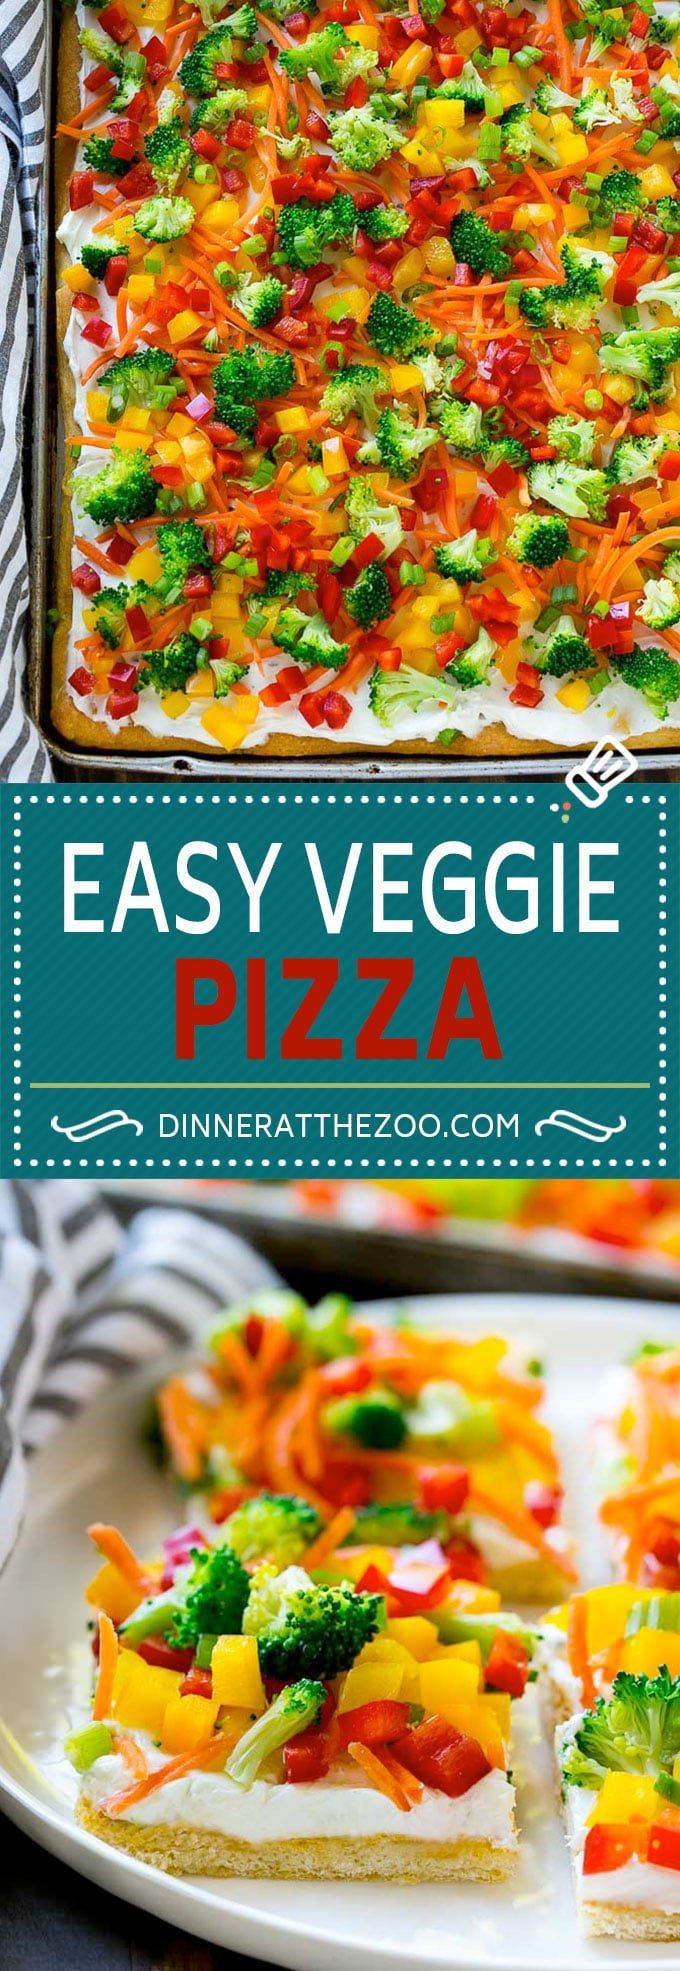 Veggie Pizza Recipe | Crescent Veggie Pizza | Vegetable Pizza Recipe | Holiday Appetizer | Homemade Veggie Pizza